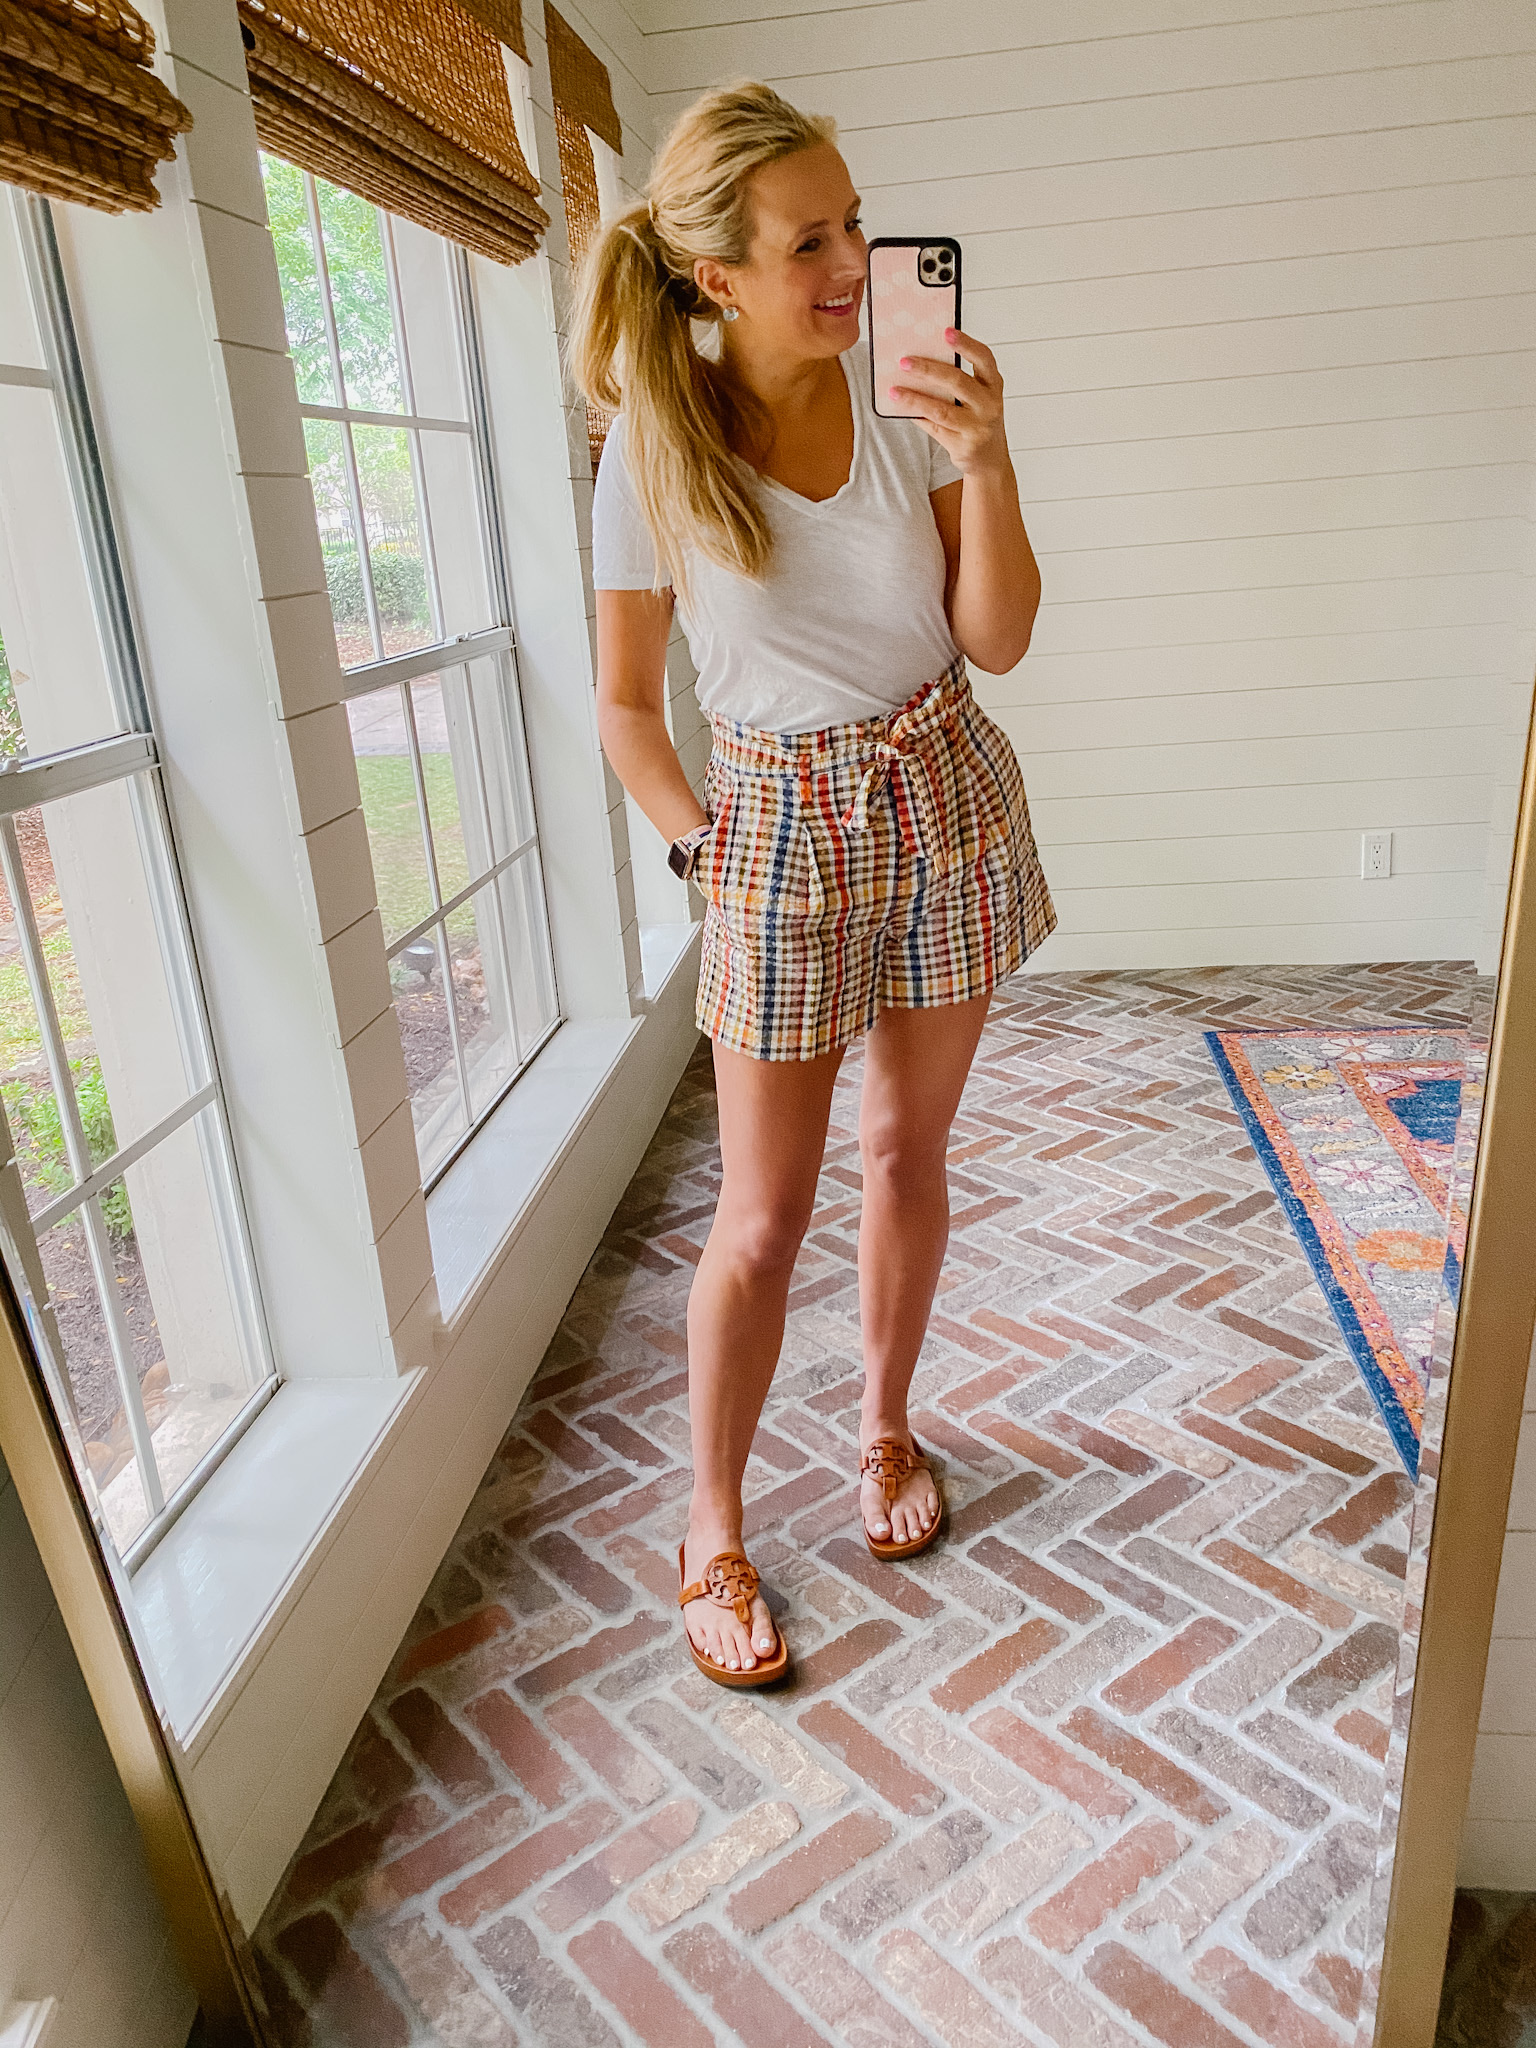 Loft Clothing by popular Houston fashion blog, The House of Fancy: image of a woman wearing a Loft white v-neck tee shirt, plaid paper bag shorts with brown Tory Burch slide sandals.